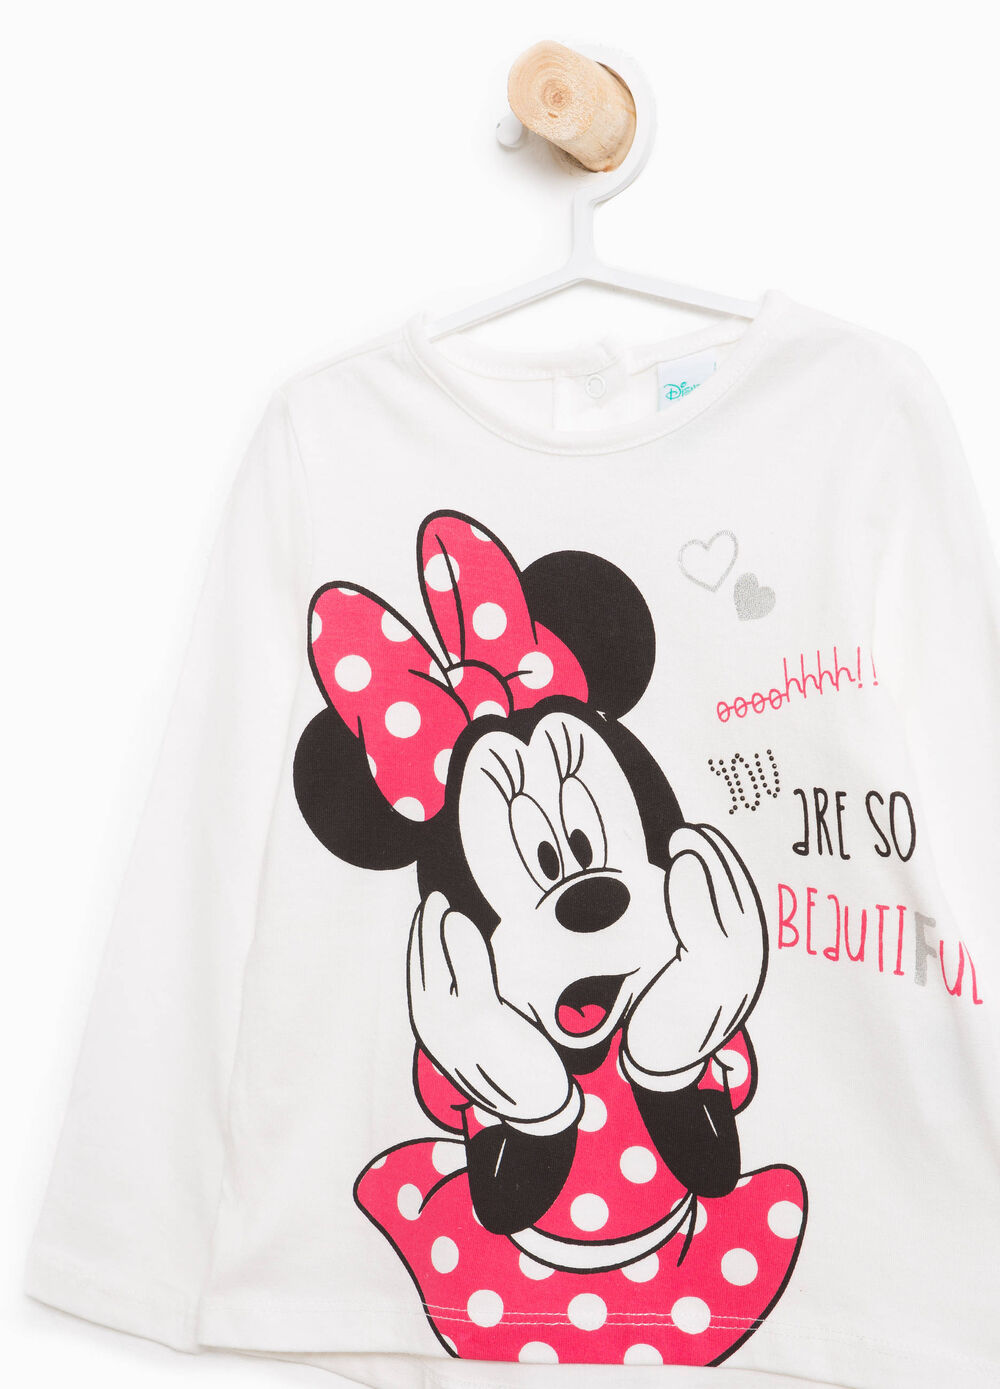 Cotton T-shirt with glitter Minnie Mouse print